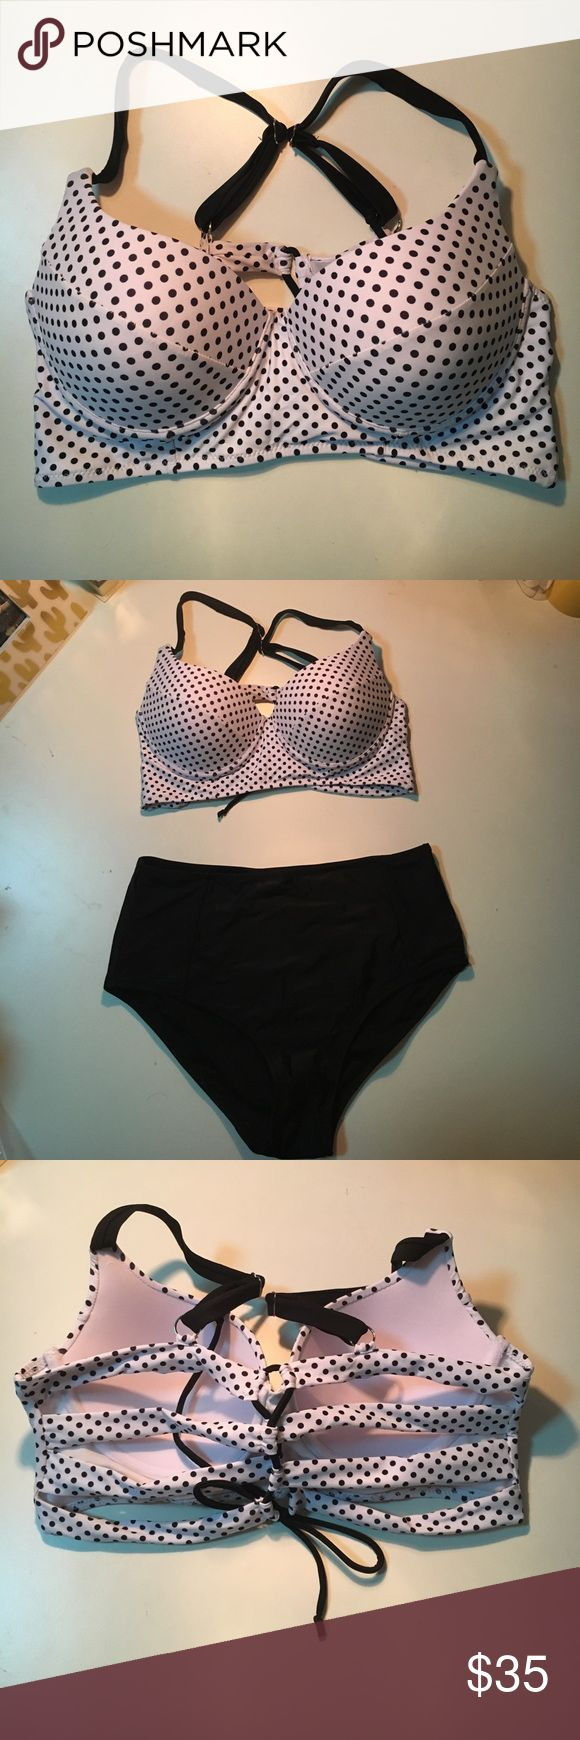 Polka dot bikini NWOT. Polka dot bikini top with high waisted black bottoms. Bought online but didn't fit my bust. Adorable swimsuit with strappy back. Swim Bikinis